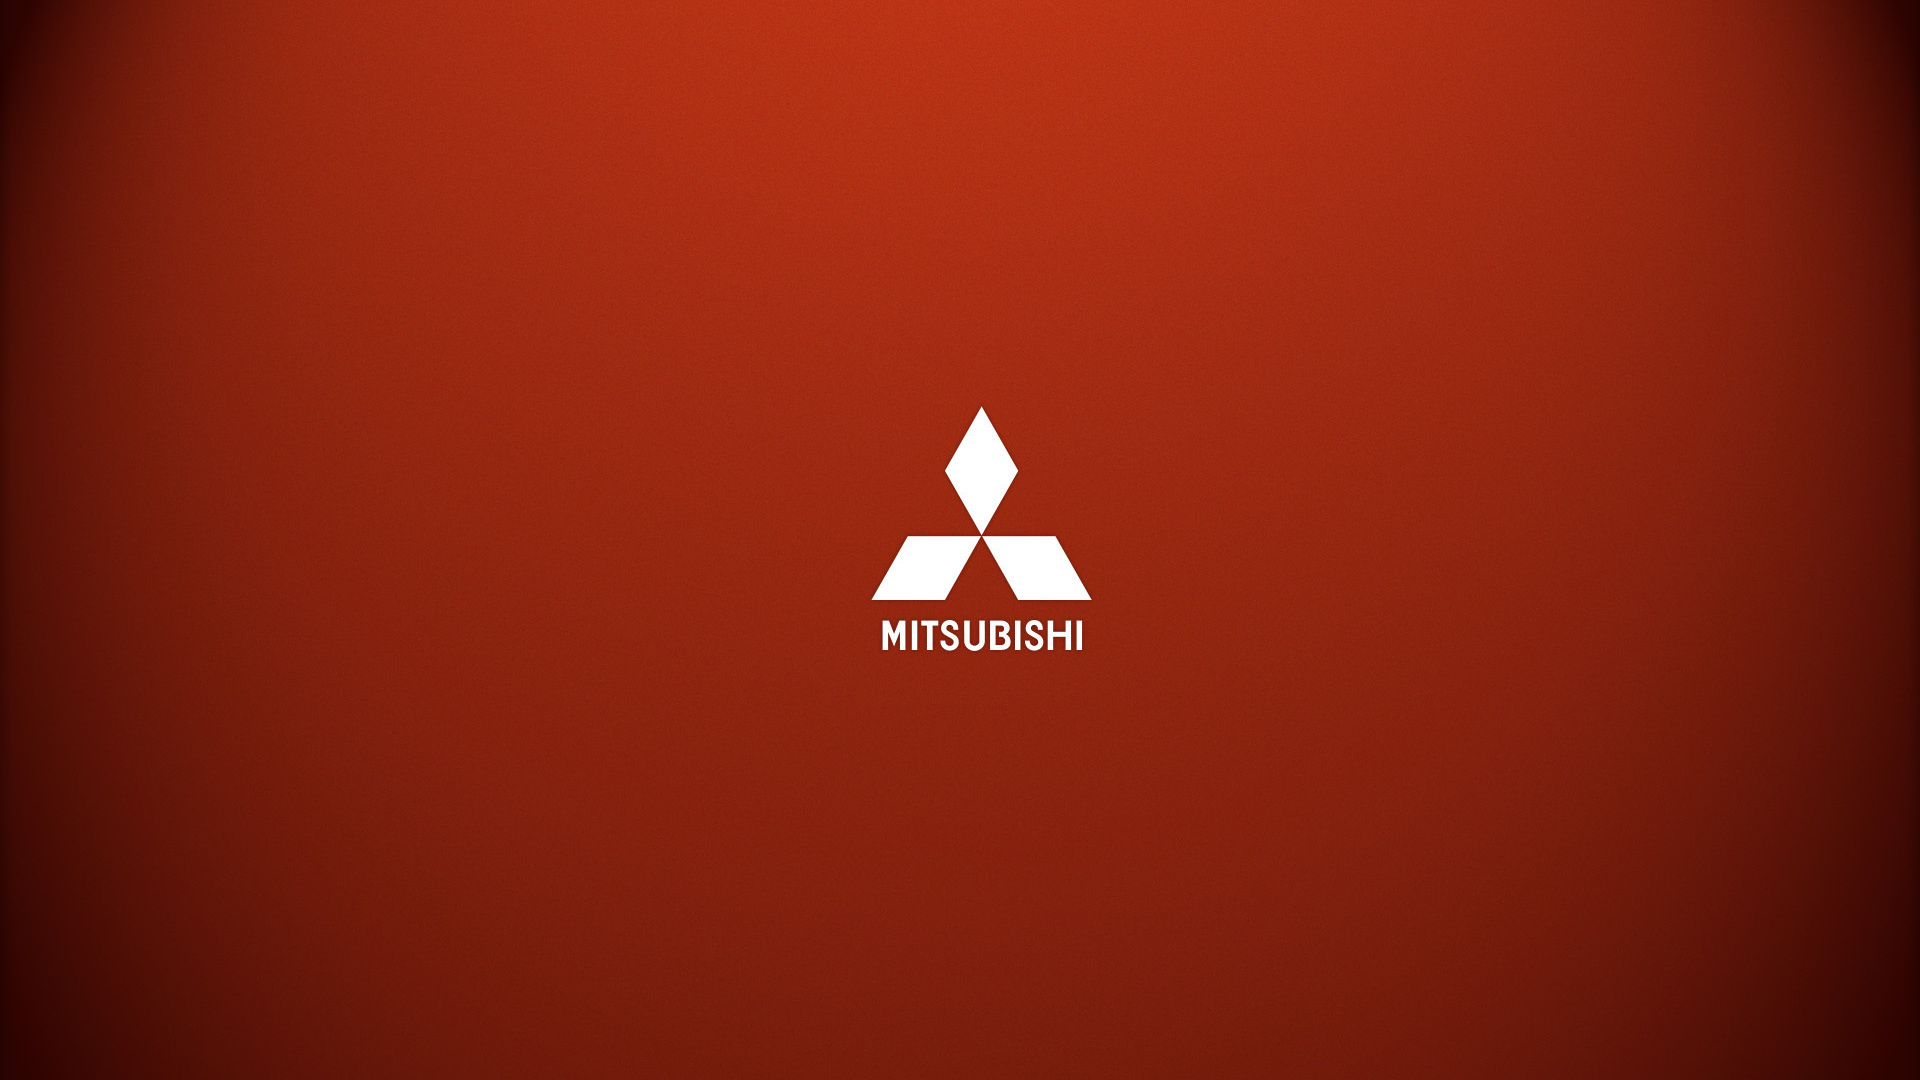 Mitsubishi Logo Wallpapers